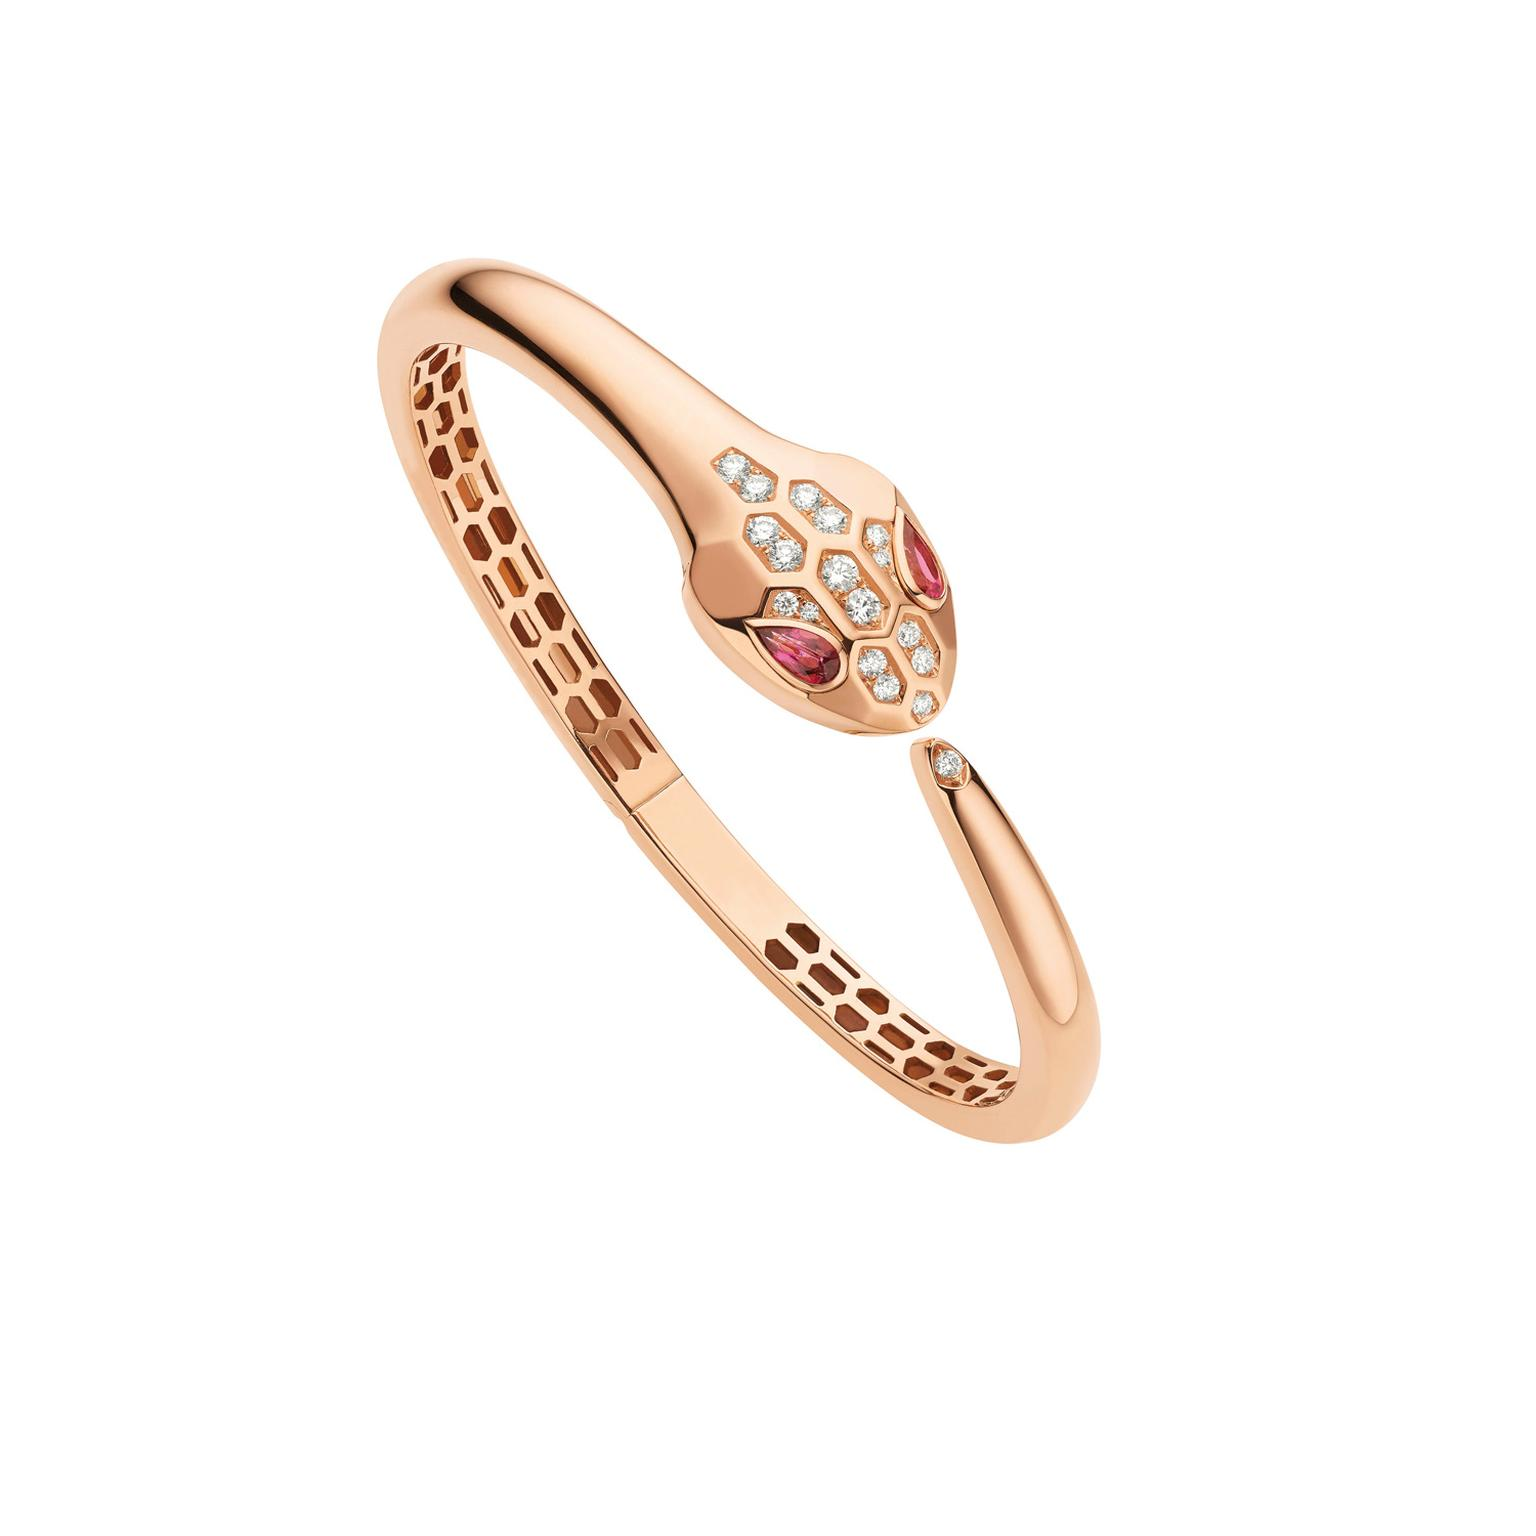 Bulgari Serpenti Seduttori bracelet in rose gold with rubellites